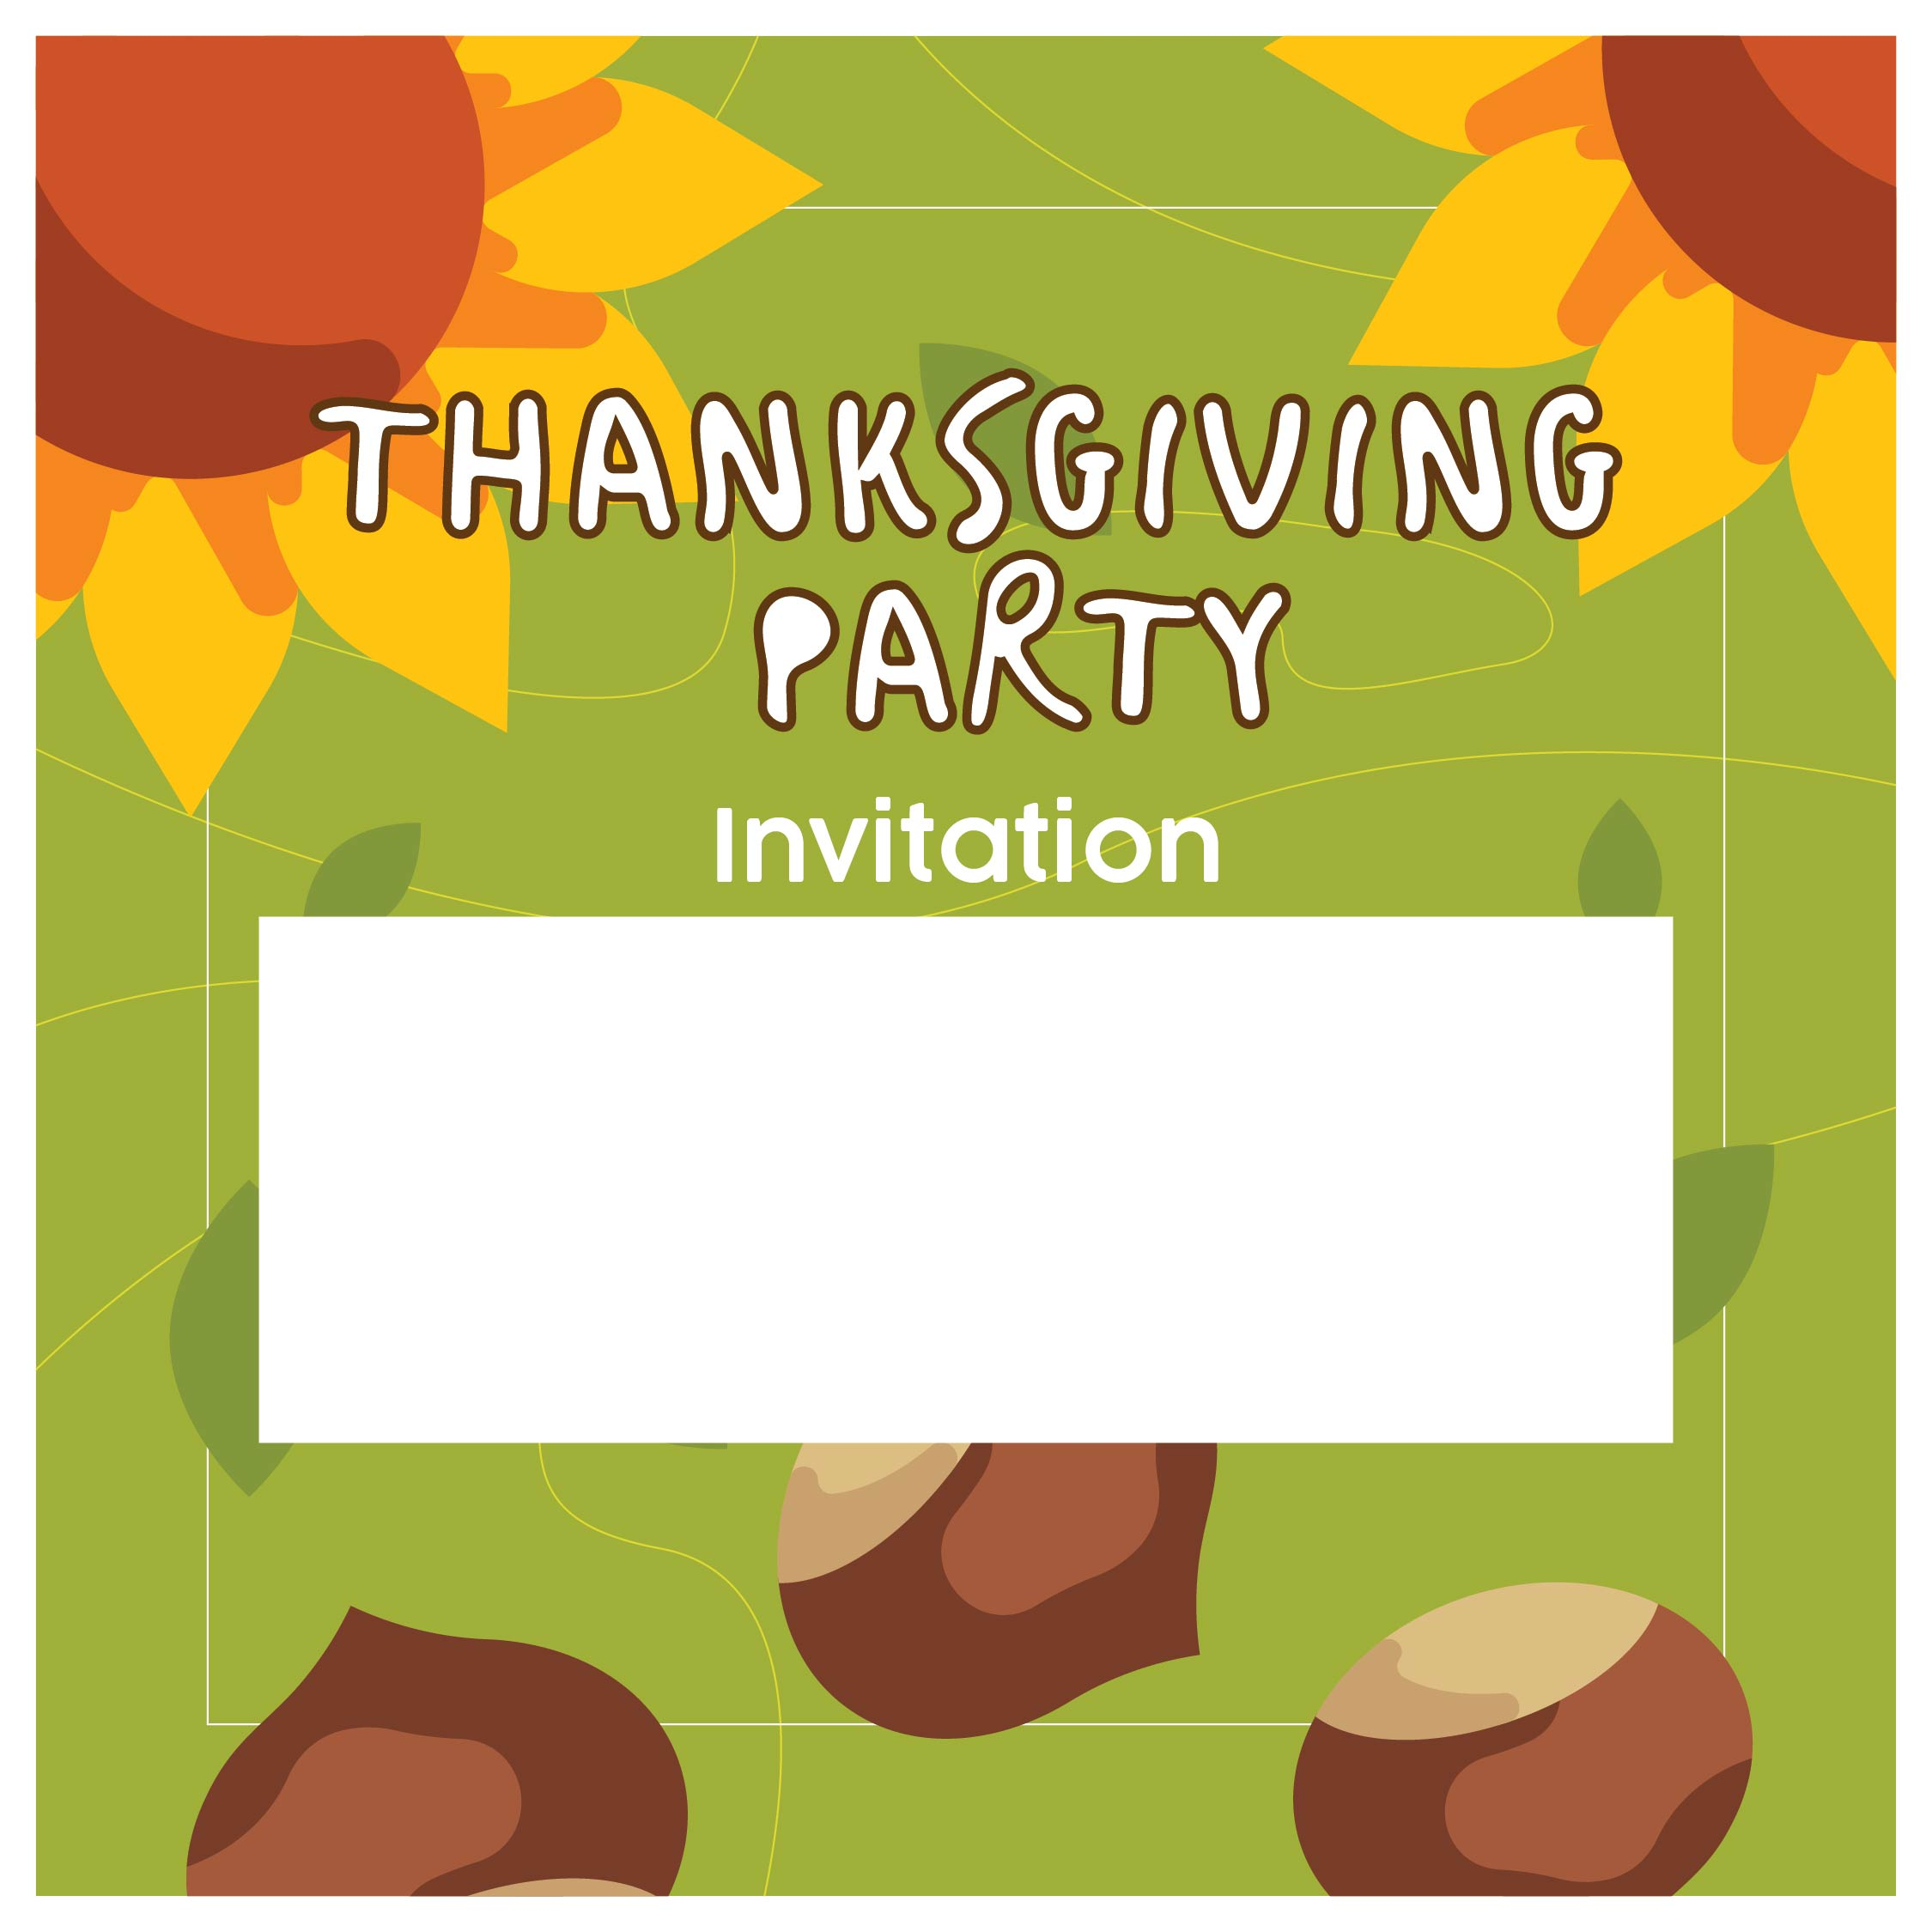 9 Best Images of Thanksgiving Printable Invitation ...